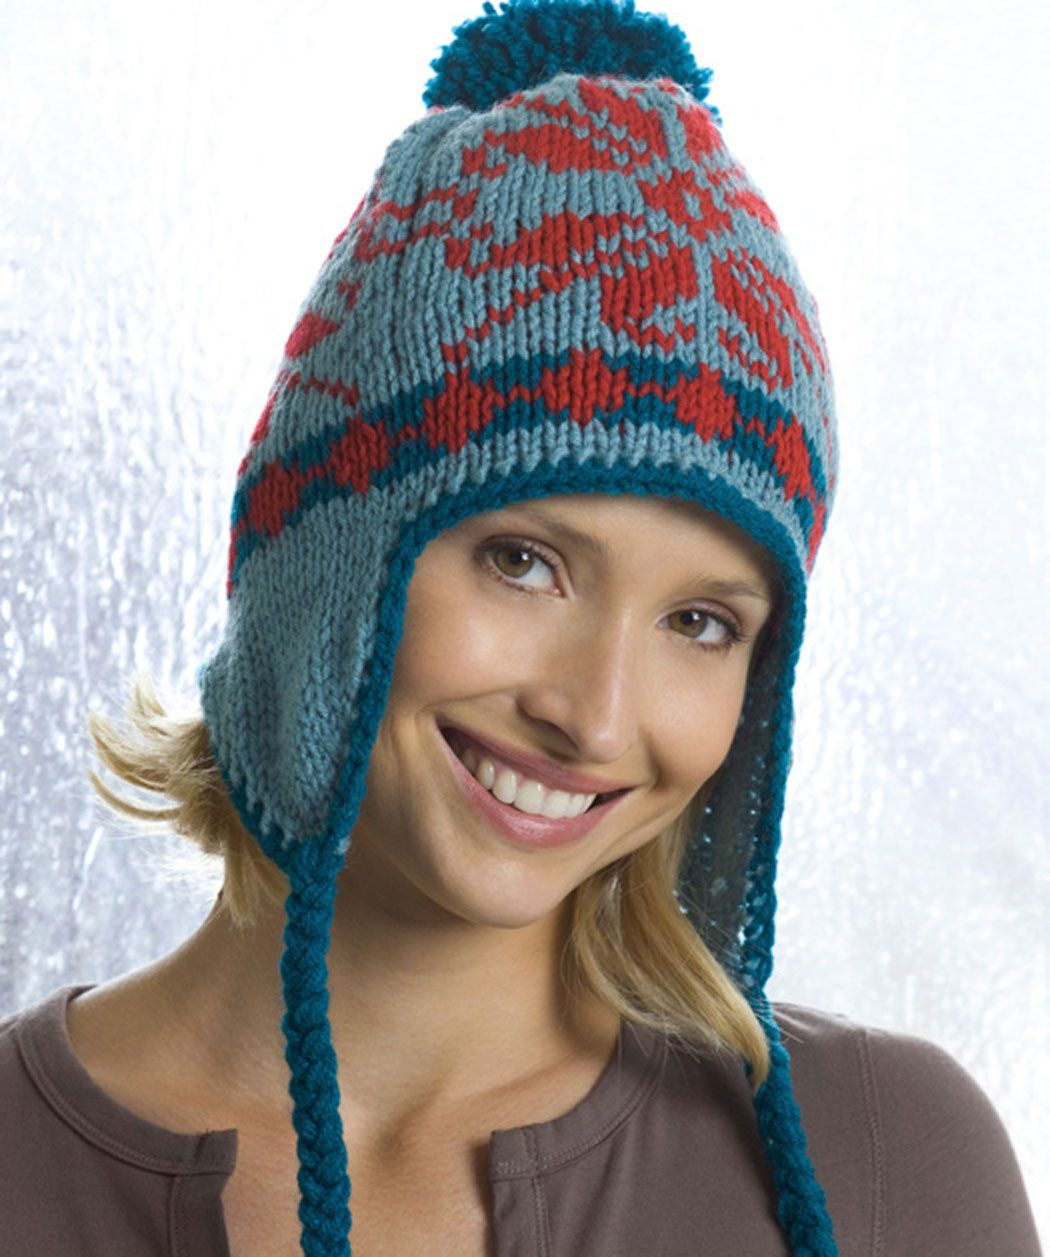 Knit a hat for someoneexcept maybe not this one she looks very knitting patterns free knitting hats knit patterns free pattern pretty patterns free knitting flap has red heart yarn red hearts bankloansurffo Gallery